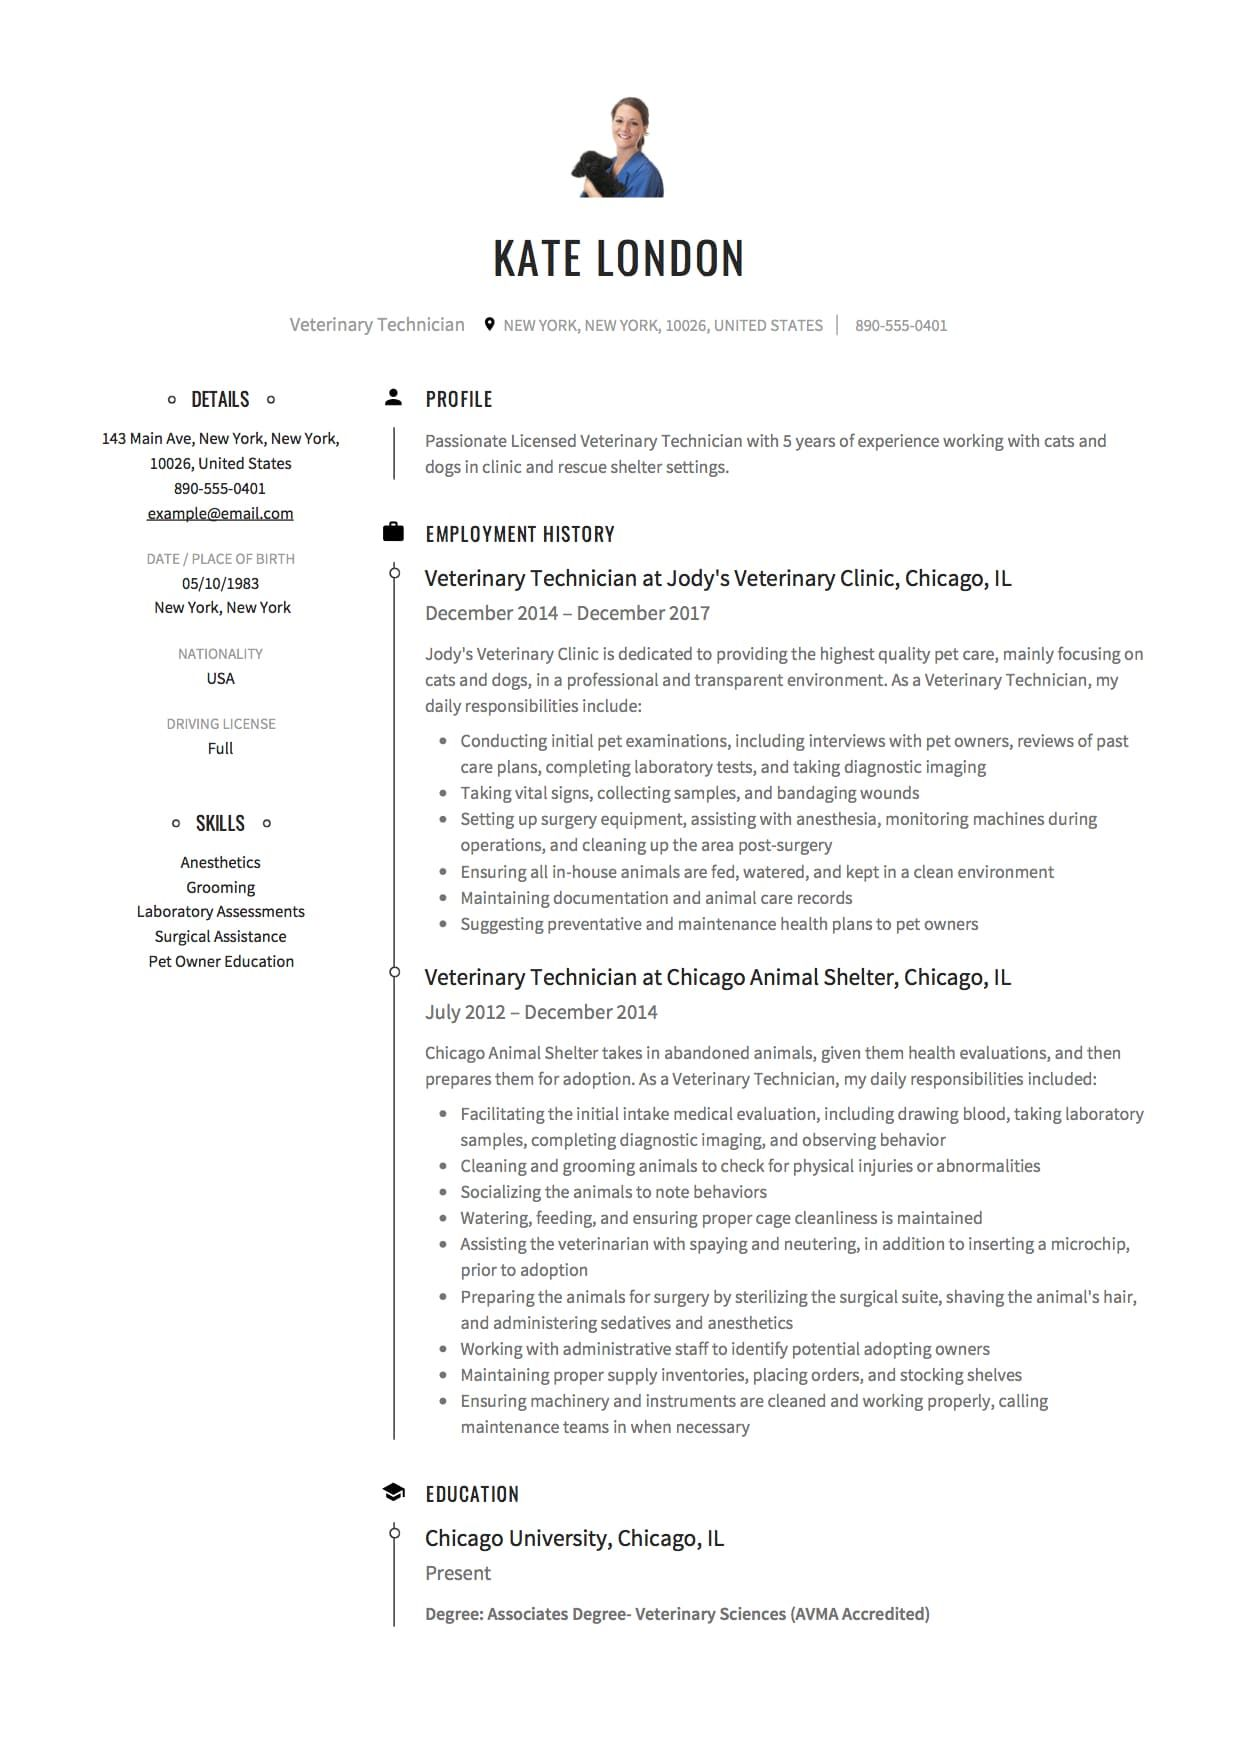 veterinary technician resume example medical template vet tech job description samples Resume Vet Tech Resume Samples